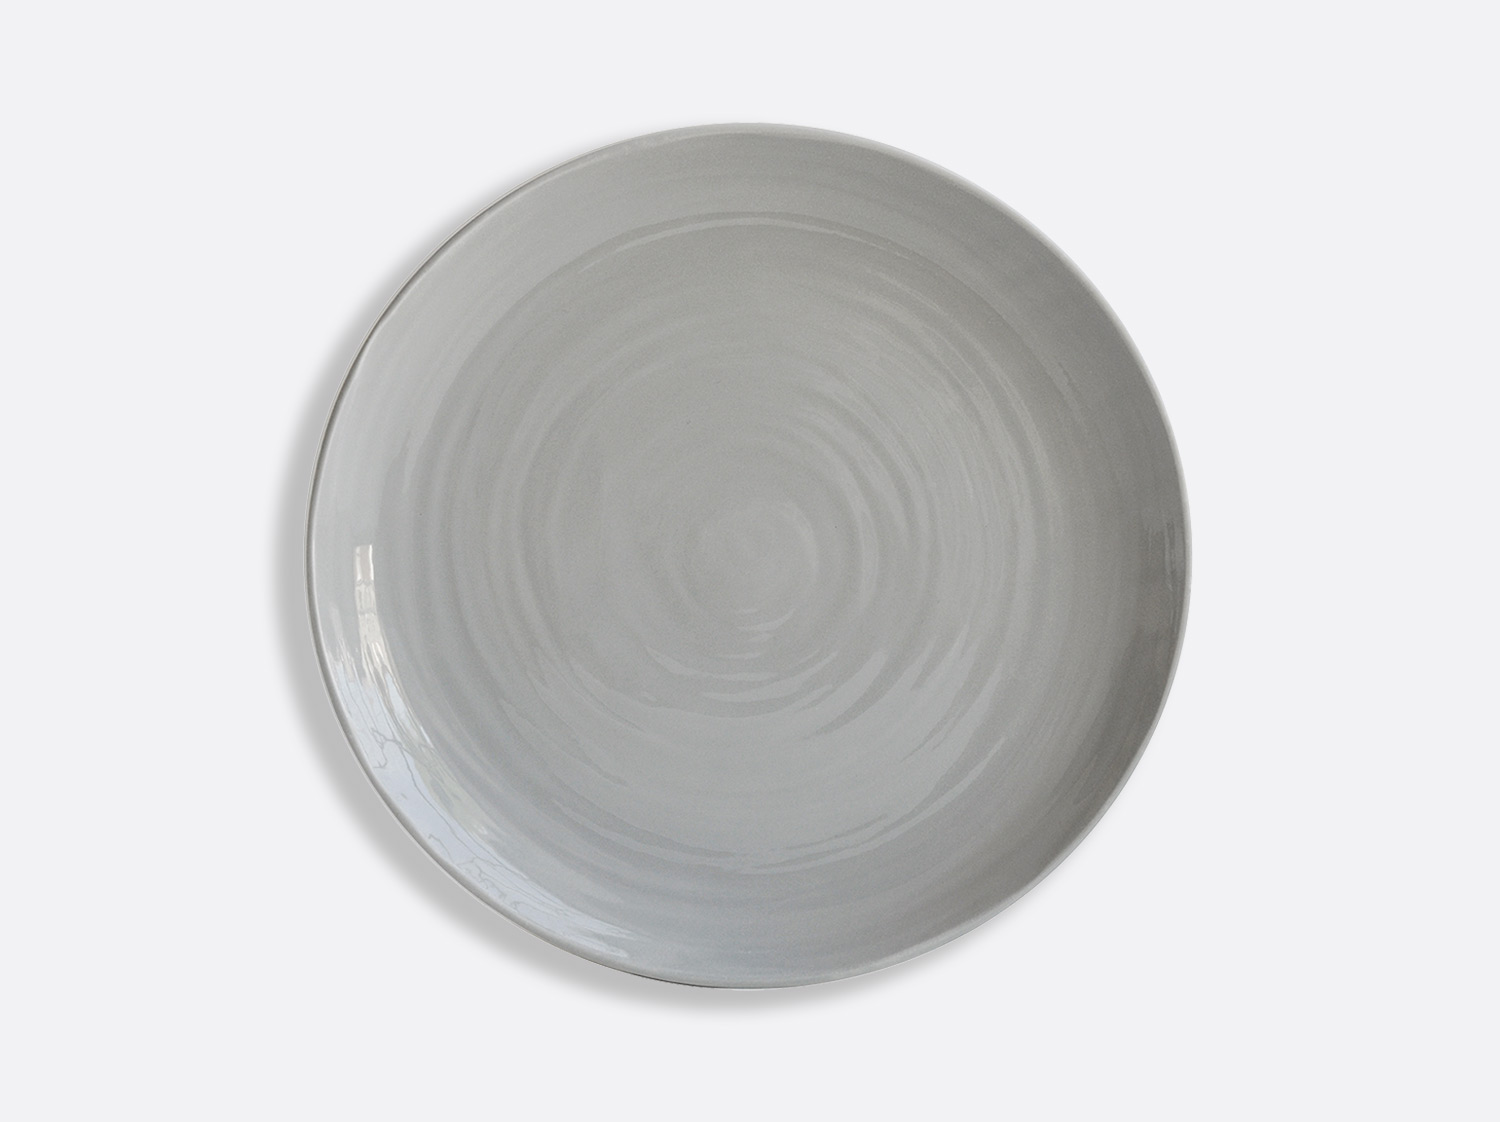 Assiette Gris 27 cm en porcelaine de la collection Origine gris Bernardaud